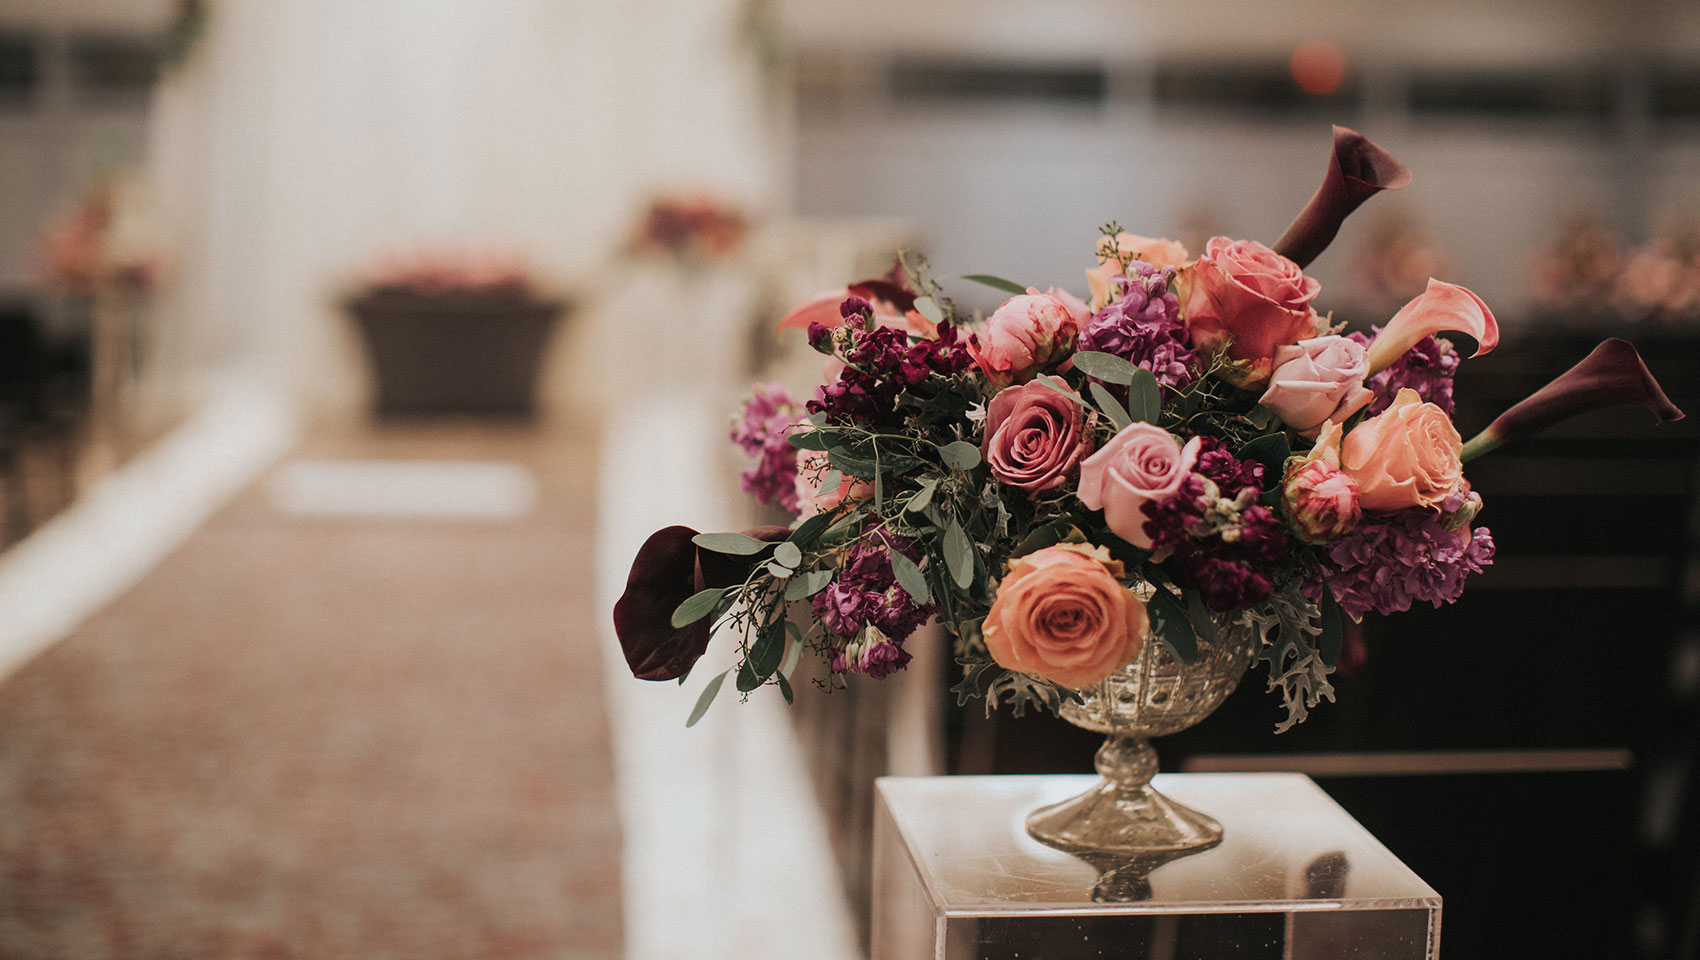 Bouquet of Flowers on a pedestal